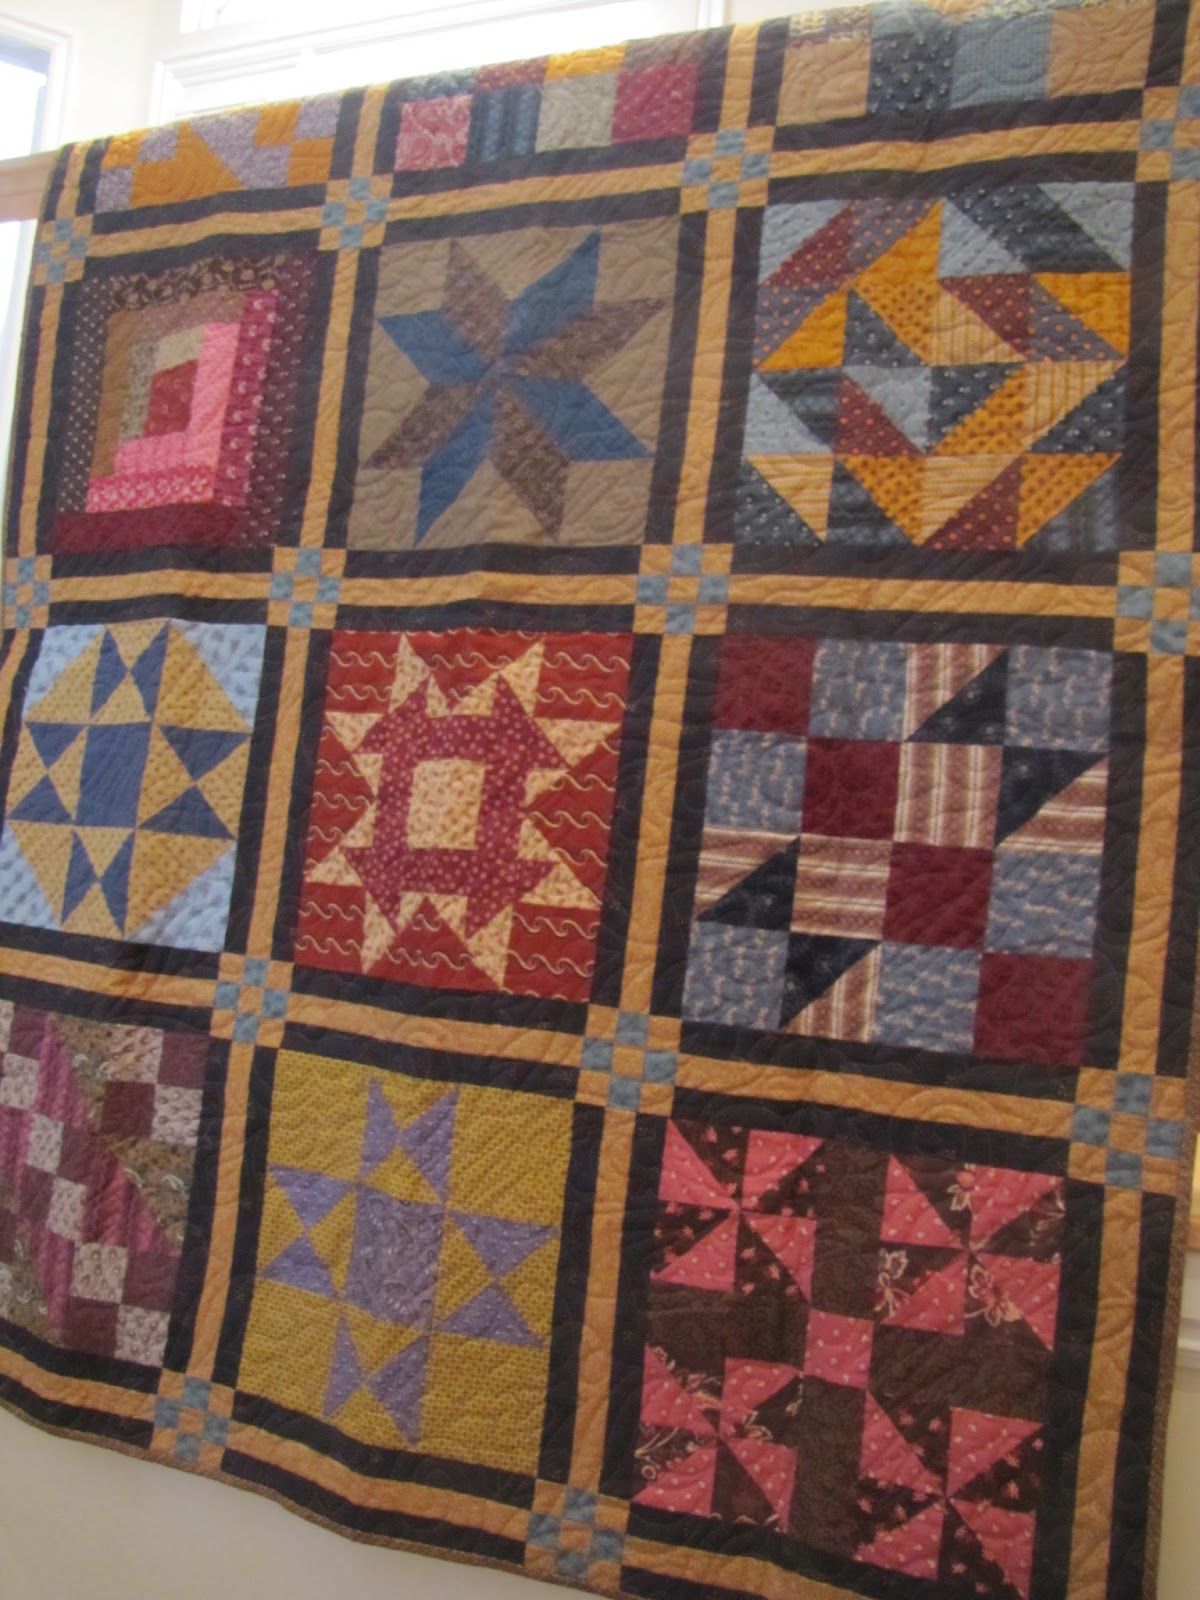 Bountiful Heirlooms Family Reunion Quilts